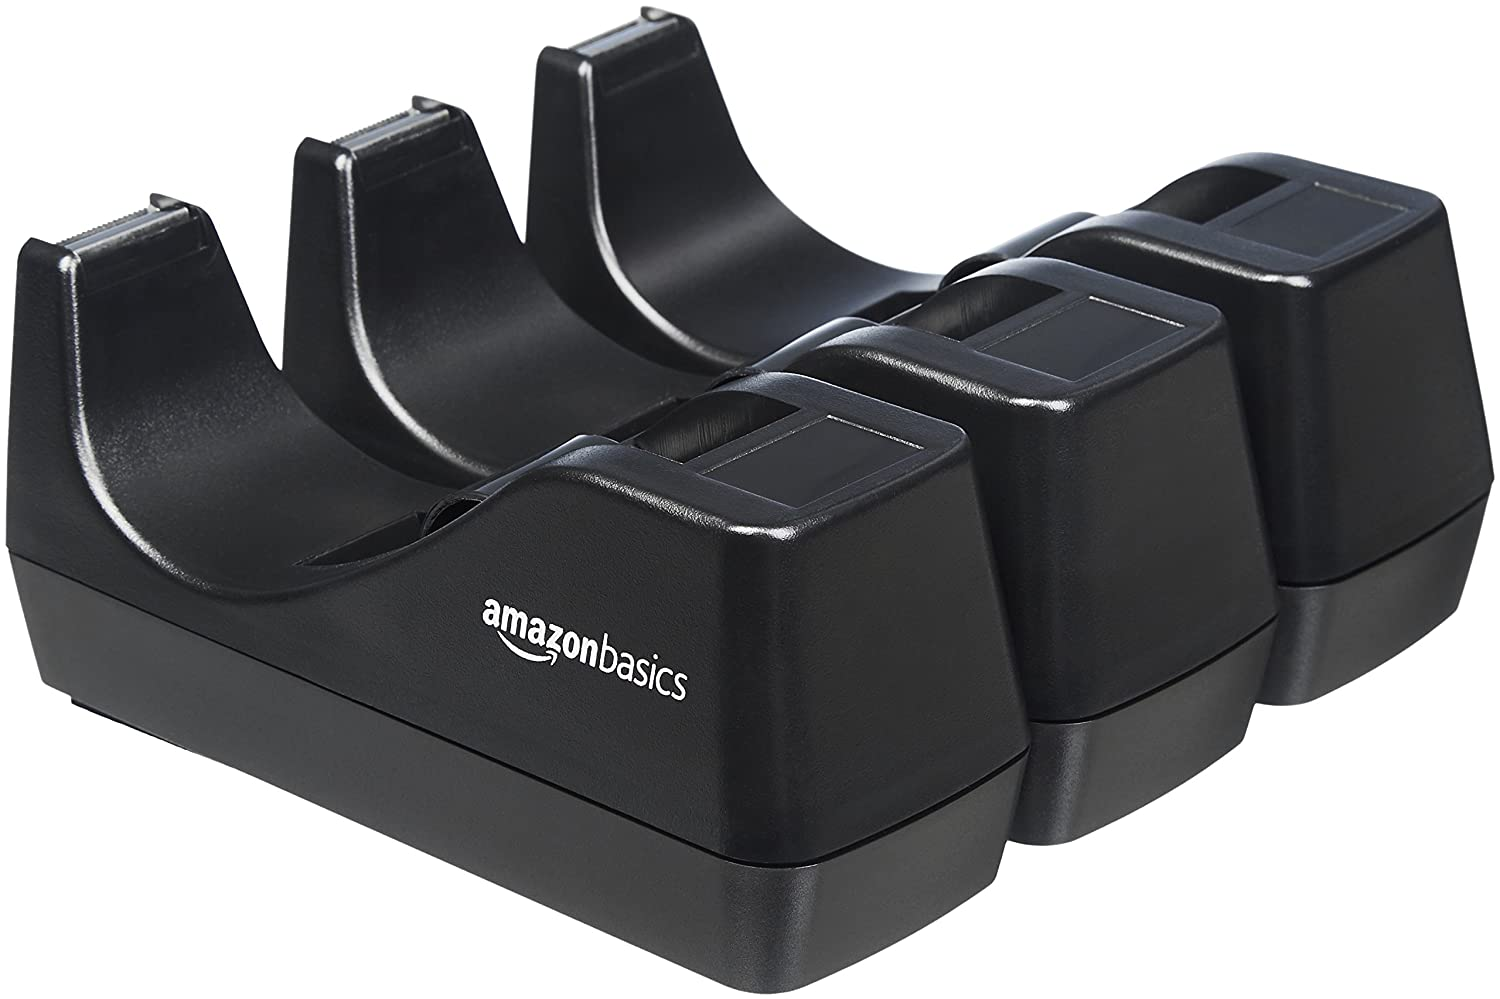 AmazonBasics Tape Dispenser - 3-Pack D1410X3